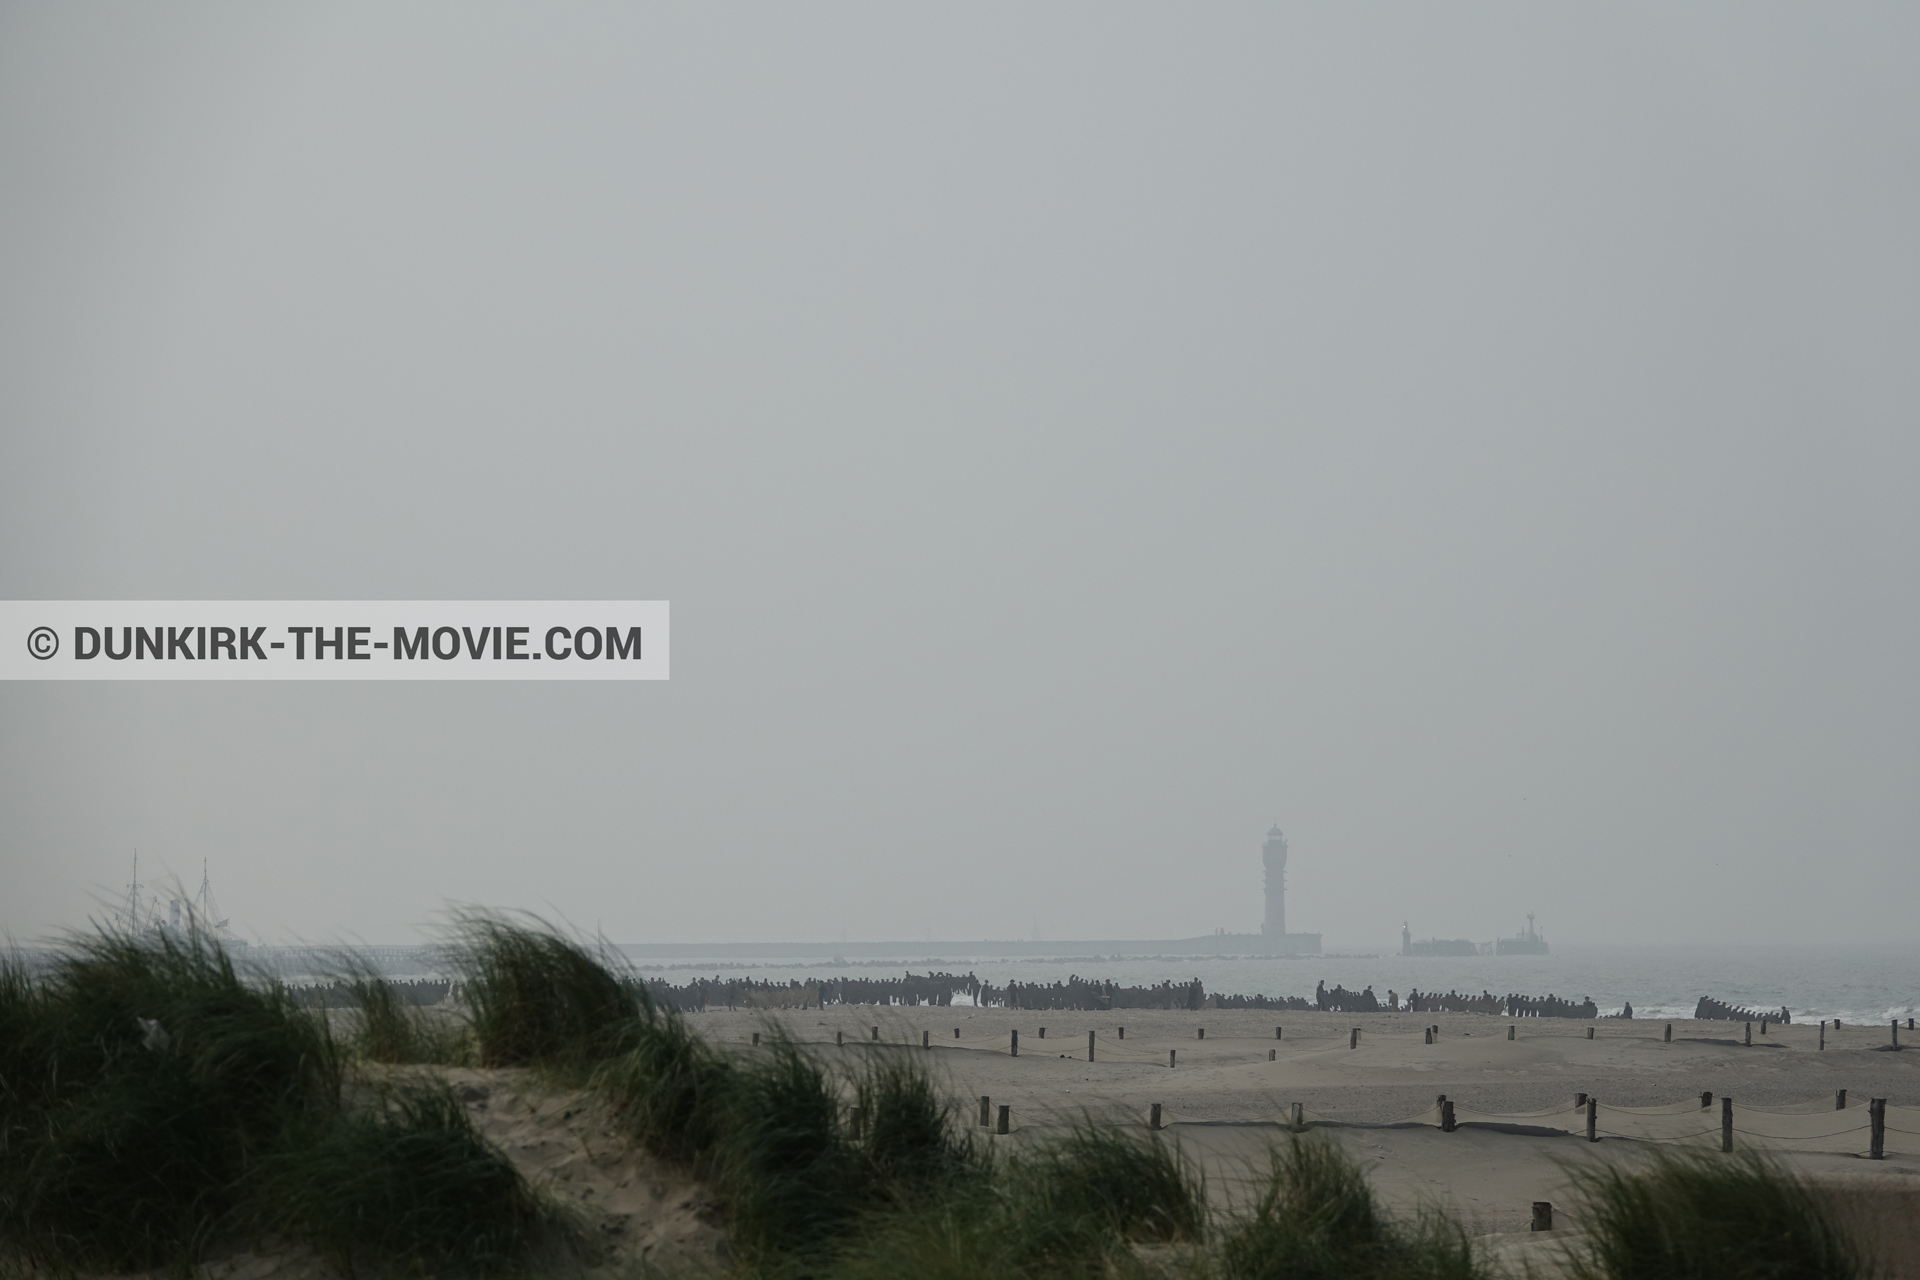 Picture with grey sky, St Pol sur Mer lighthouse, beach,  from behind the scene of the Dunkirk movie by Nolan